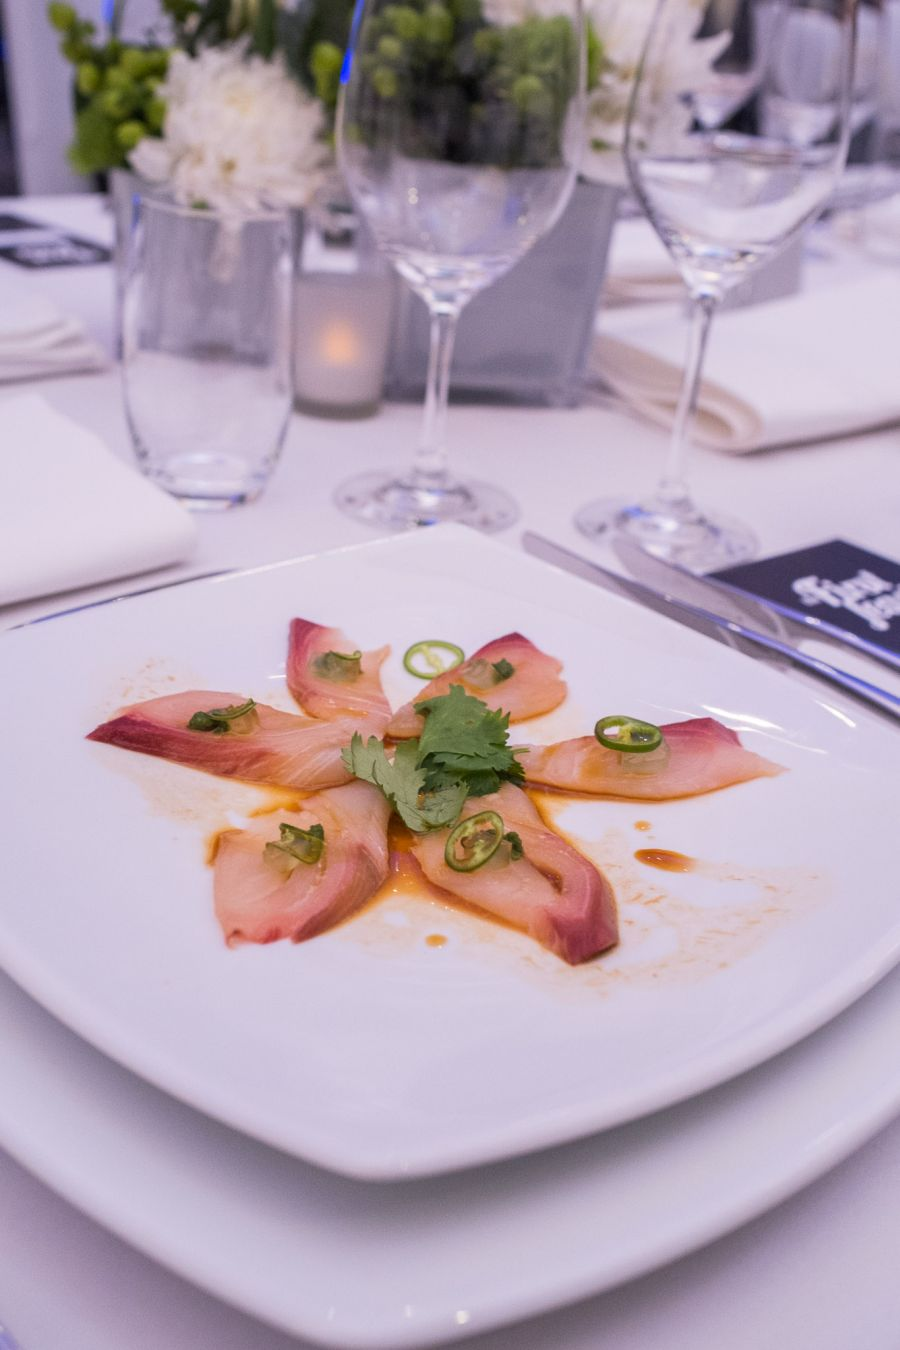 Entree (Sushia Izakaya & Bar) - Hamachi carpaccio kingfish sashimi in Asian style pesto with yuzu soy and wafu gelee